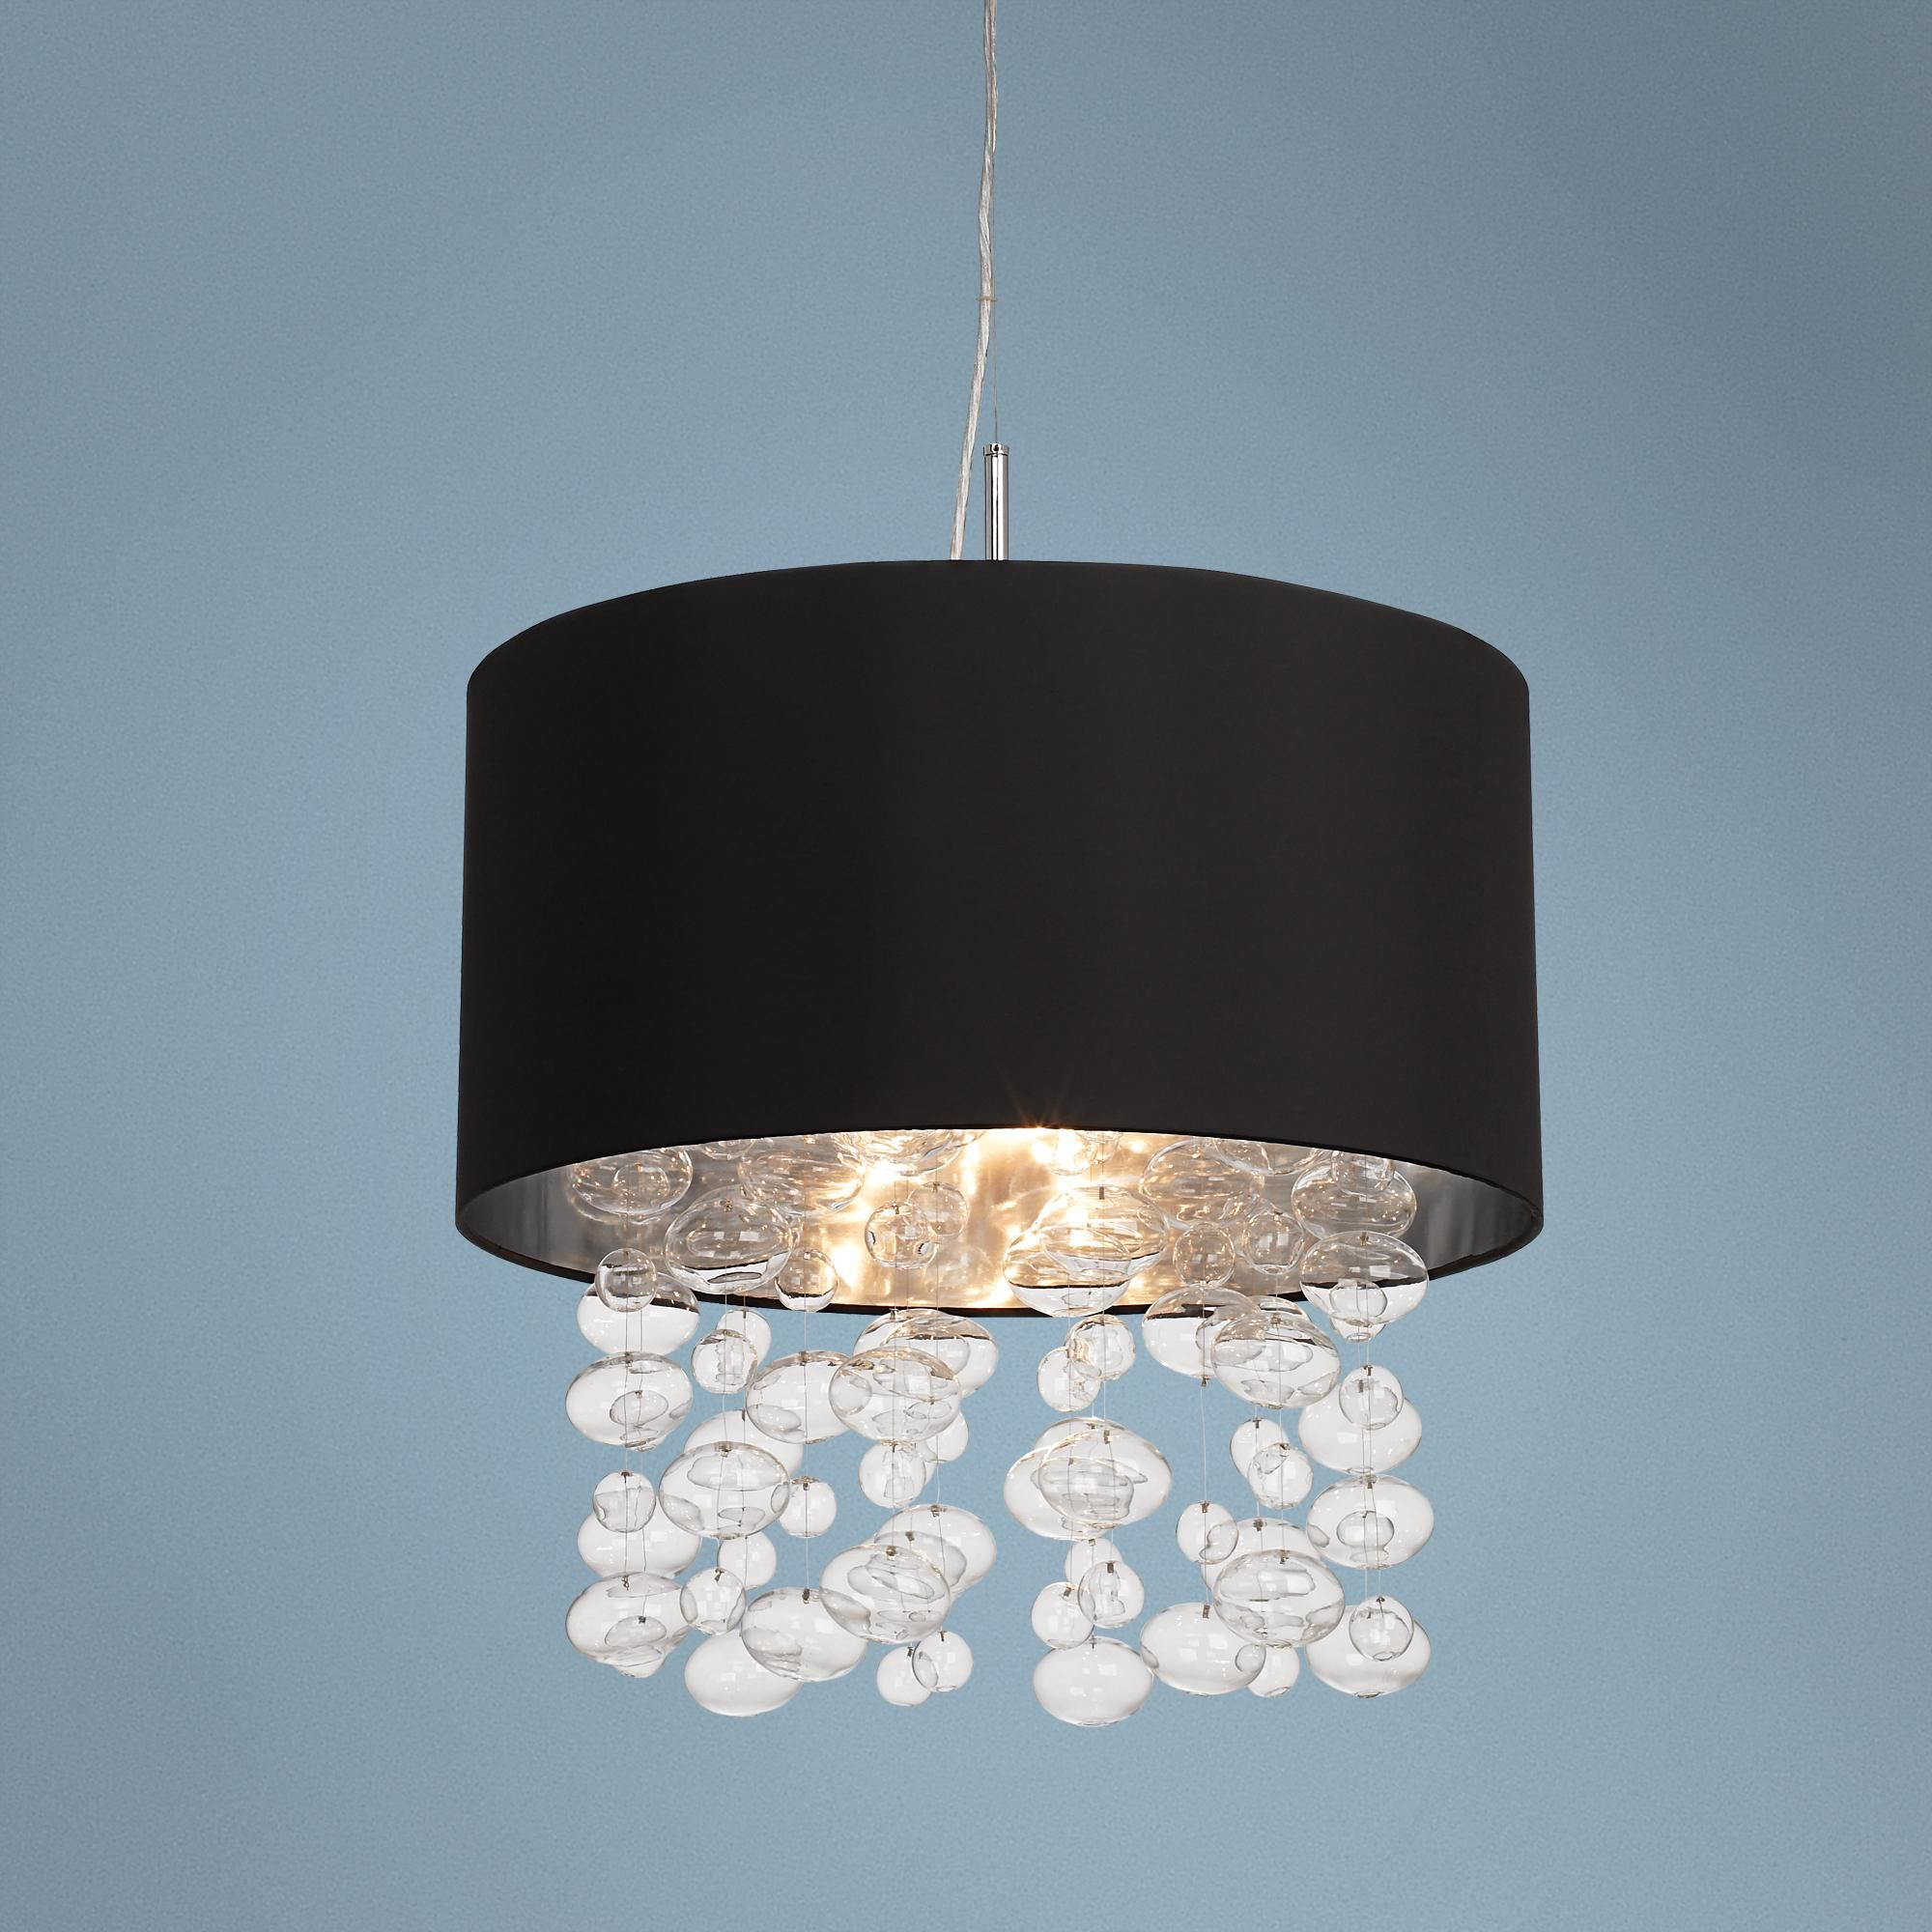 Possini Euro Design Bubble Cascade Pendant Light - Office & Possini Euro Design Bubble Cascade Pendant Light - Office | HOME ... azcodes.com